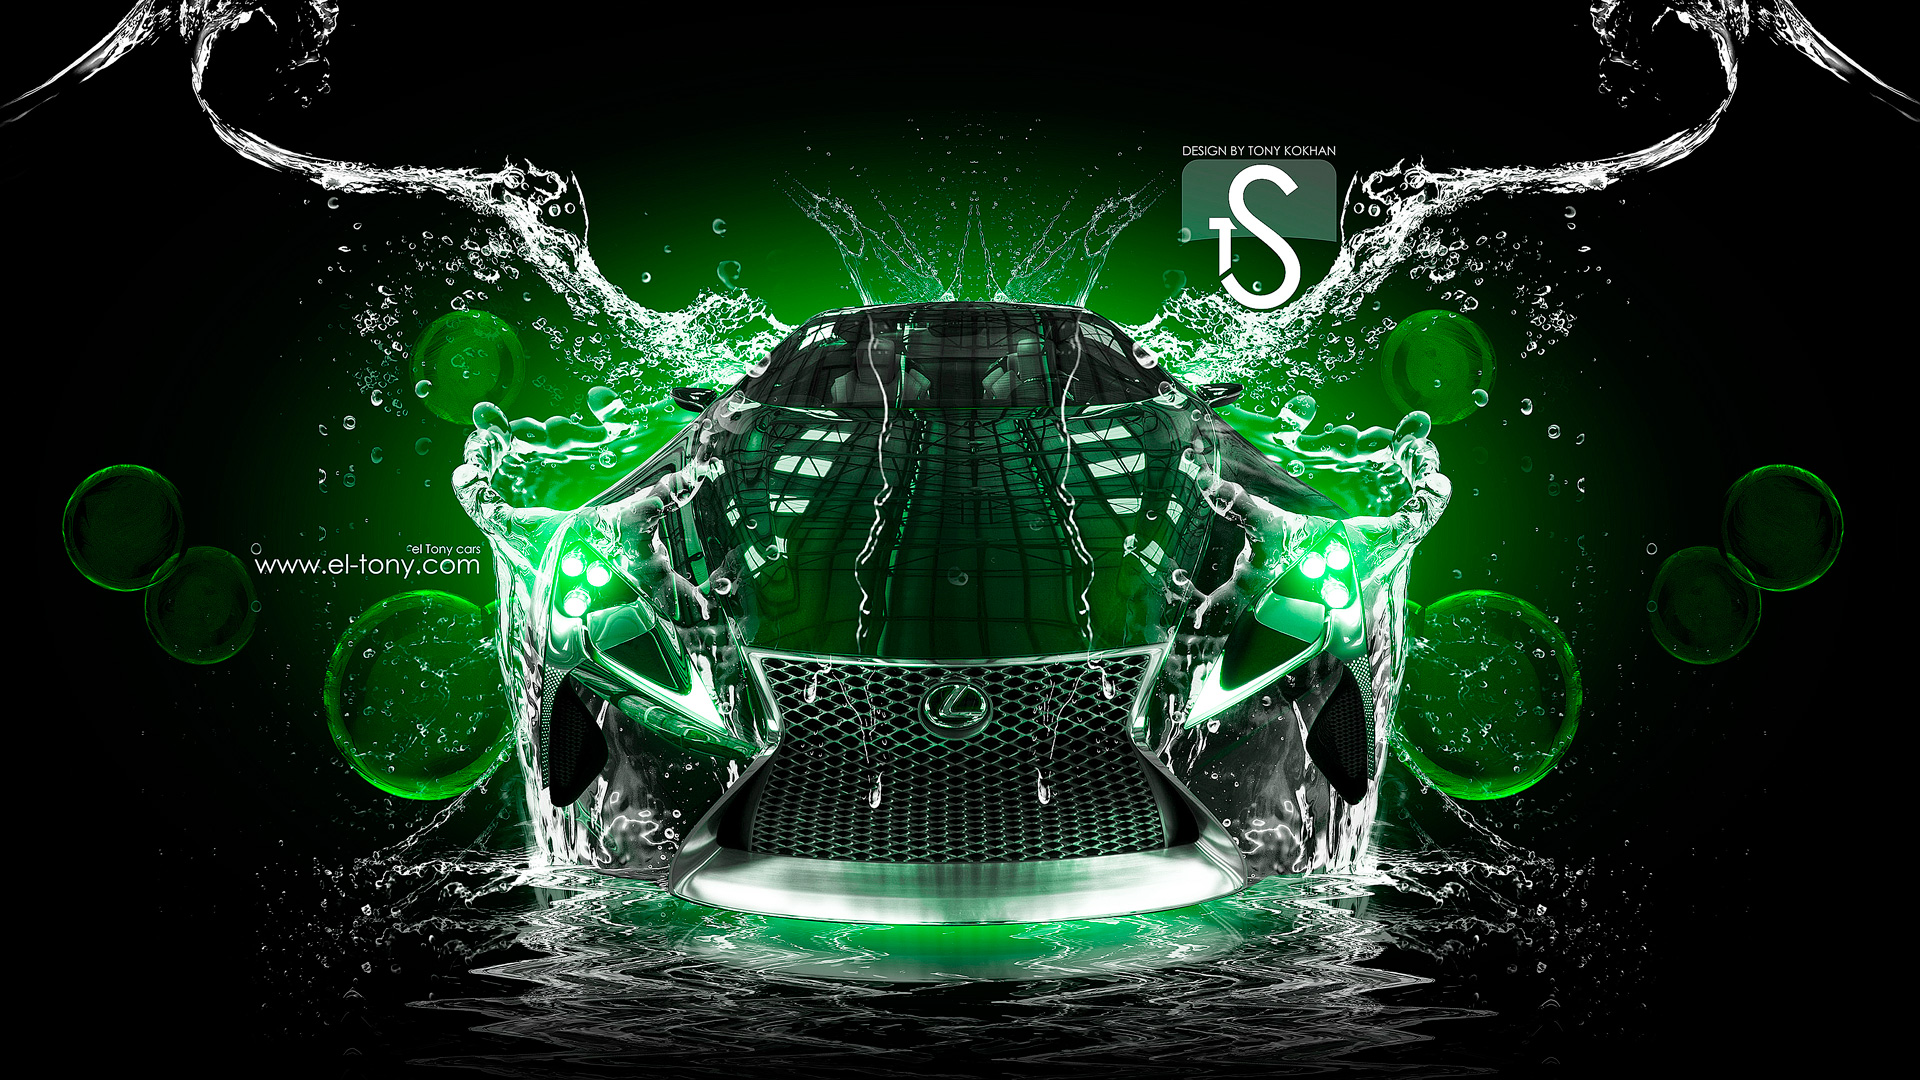 Lexus Lf Lc Water Car 2013 El Tony